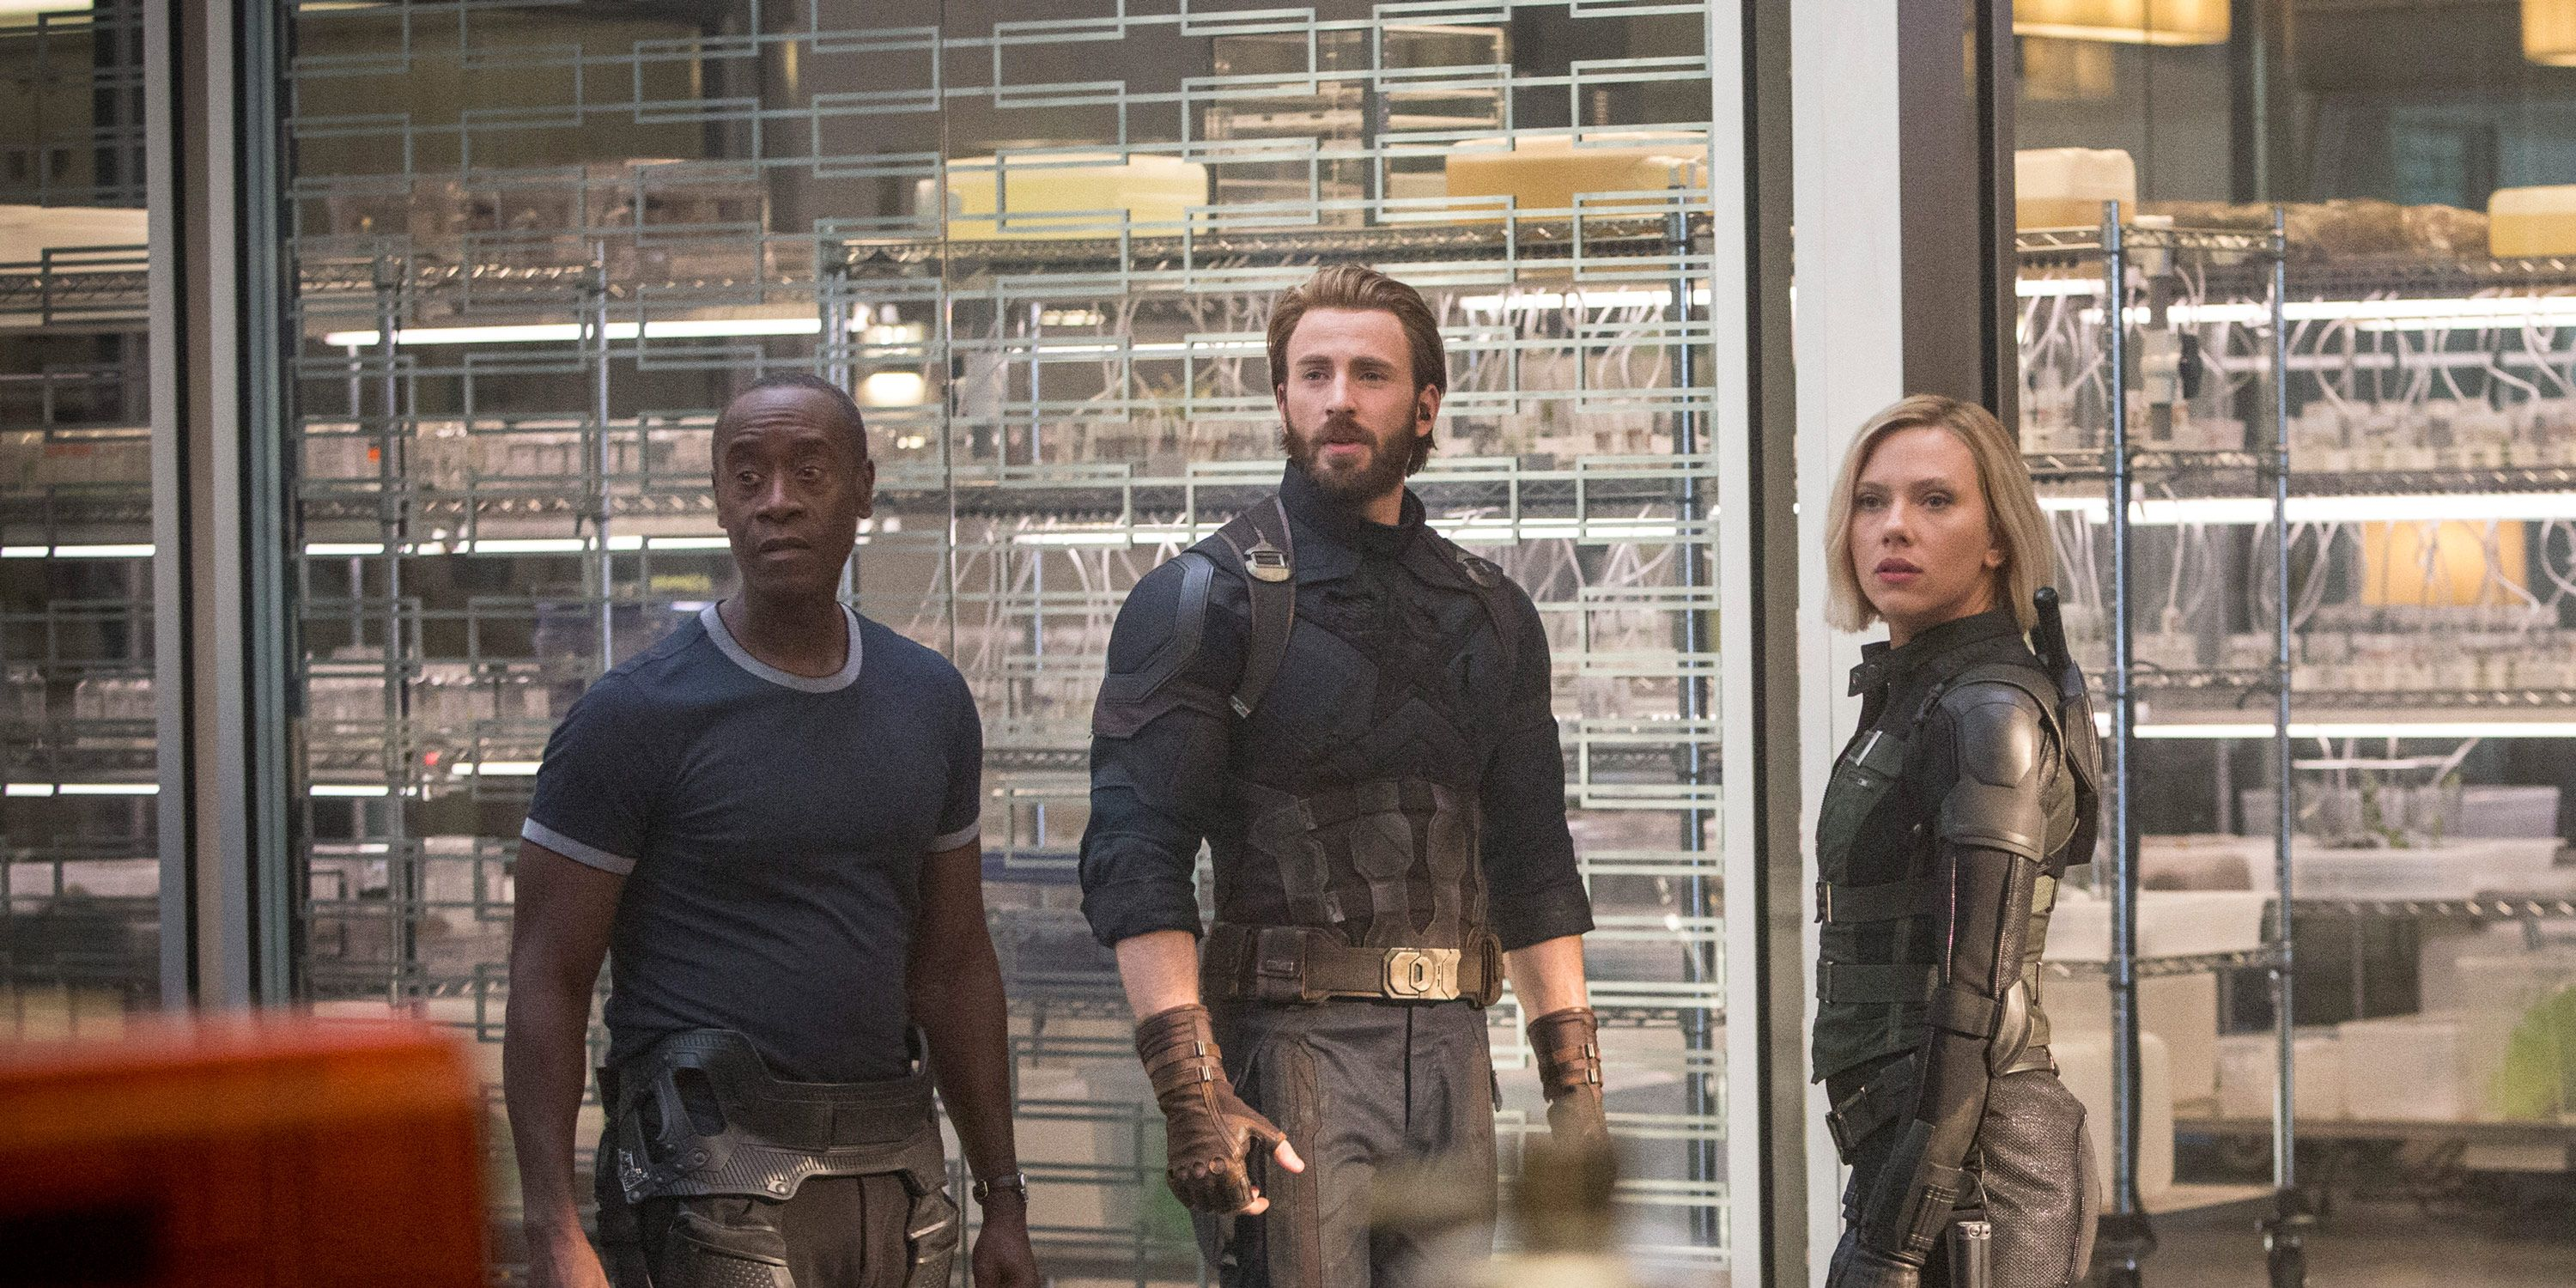 Don Cheadle, Chris Evans, Scarlett Johansson, Black Widow, Captain America, War Machine, Avengers: Infinity War